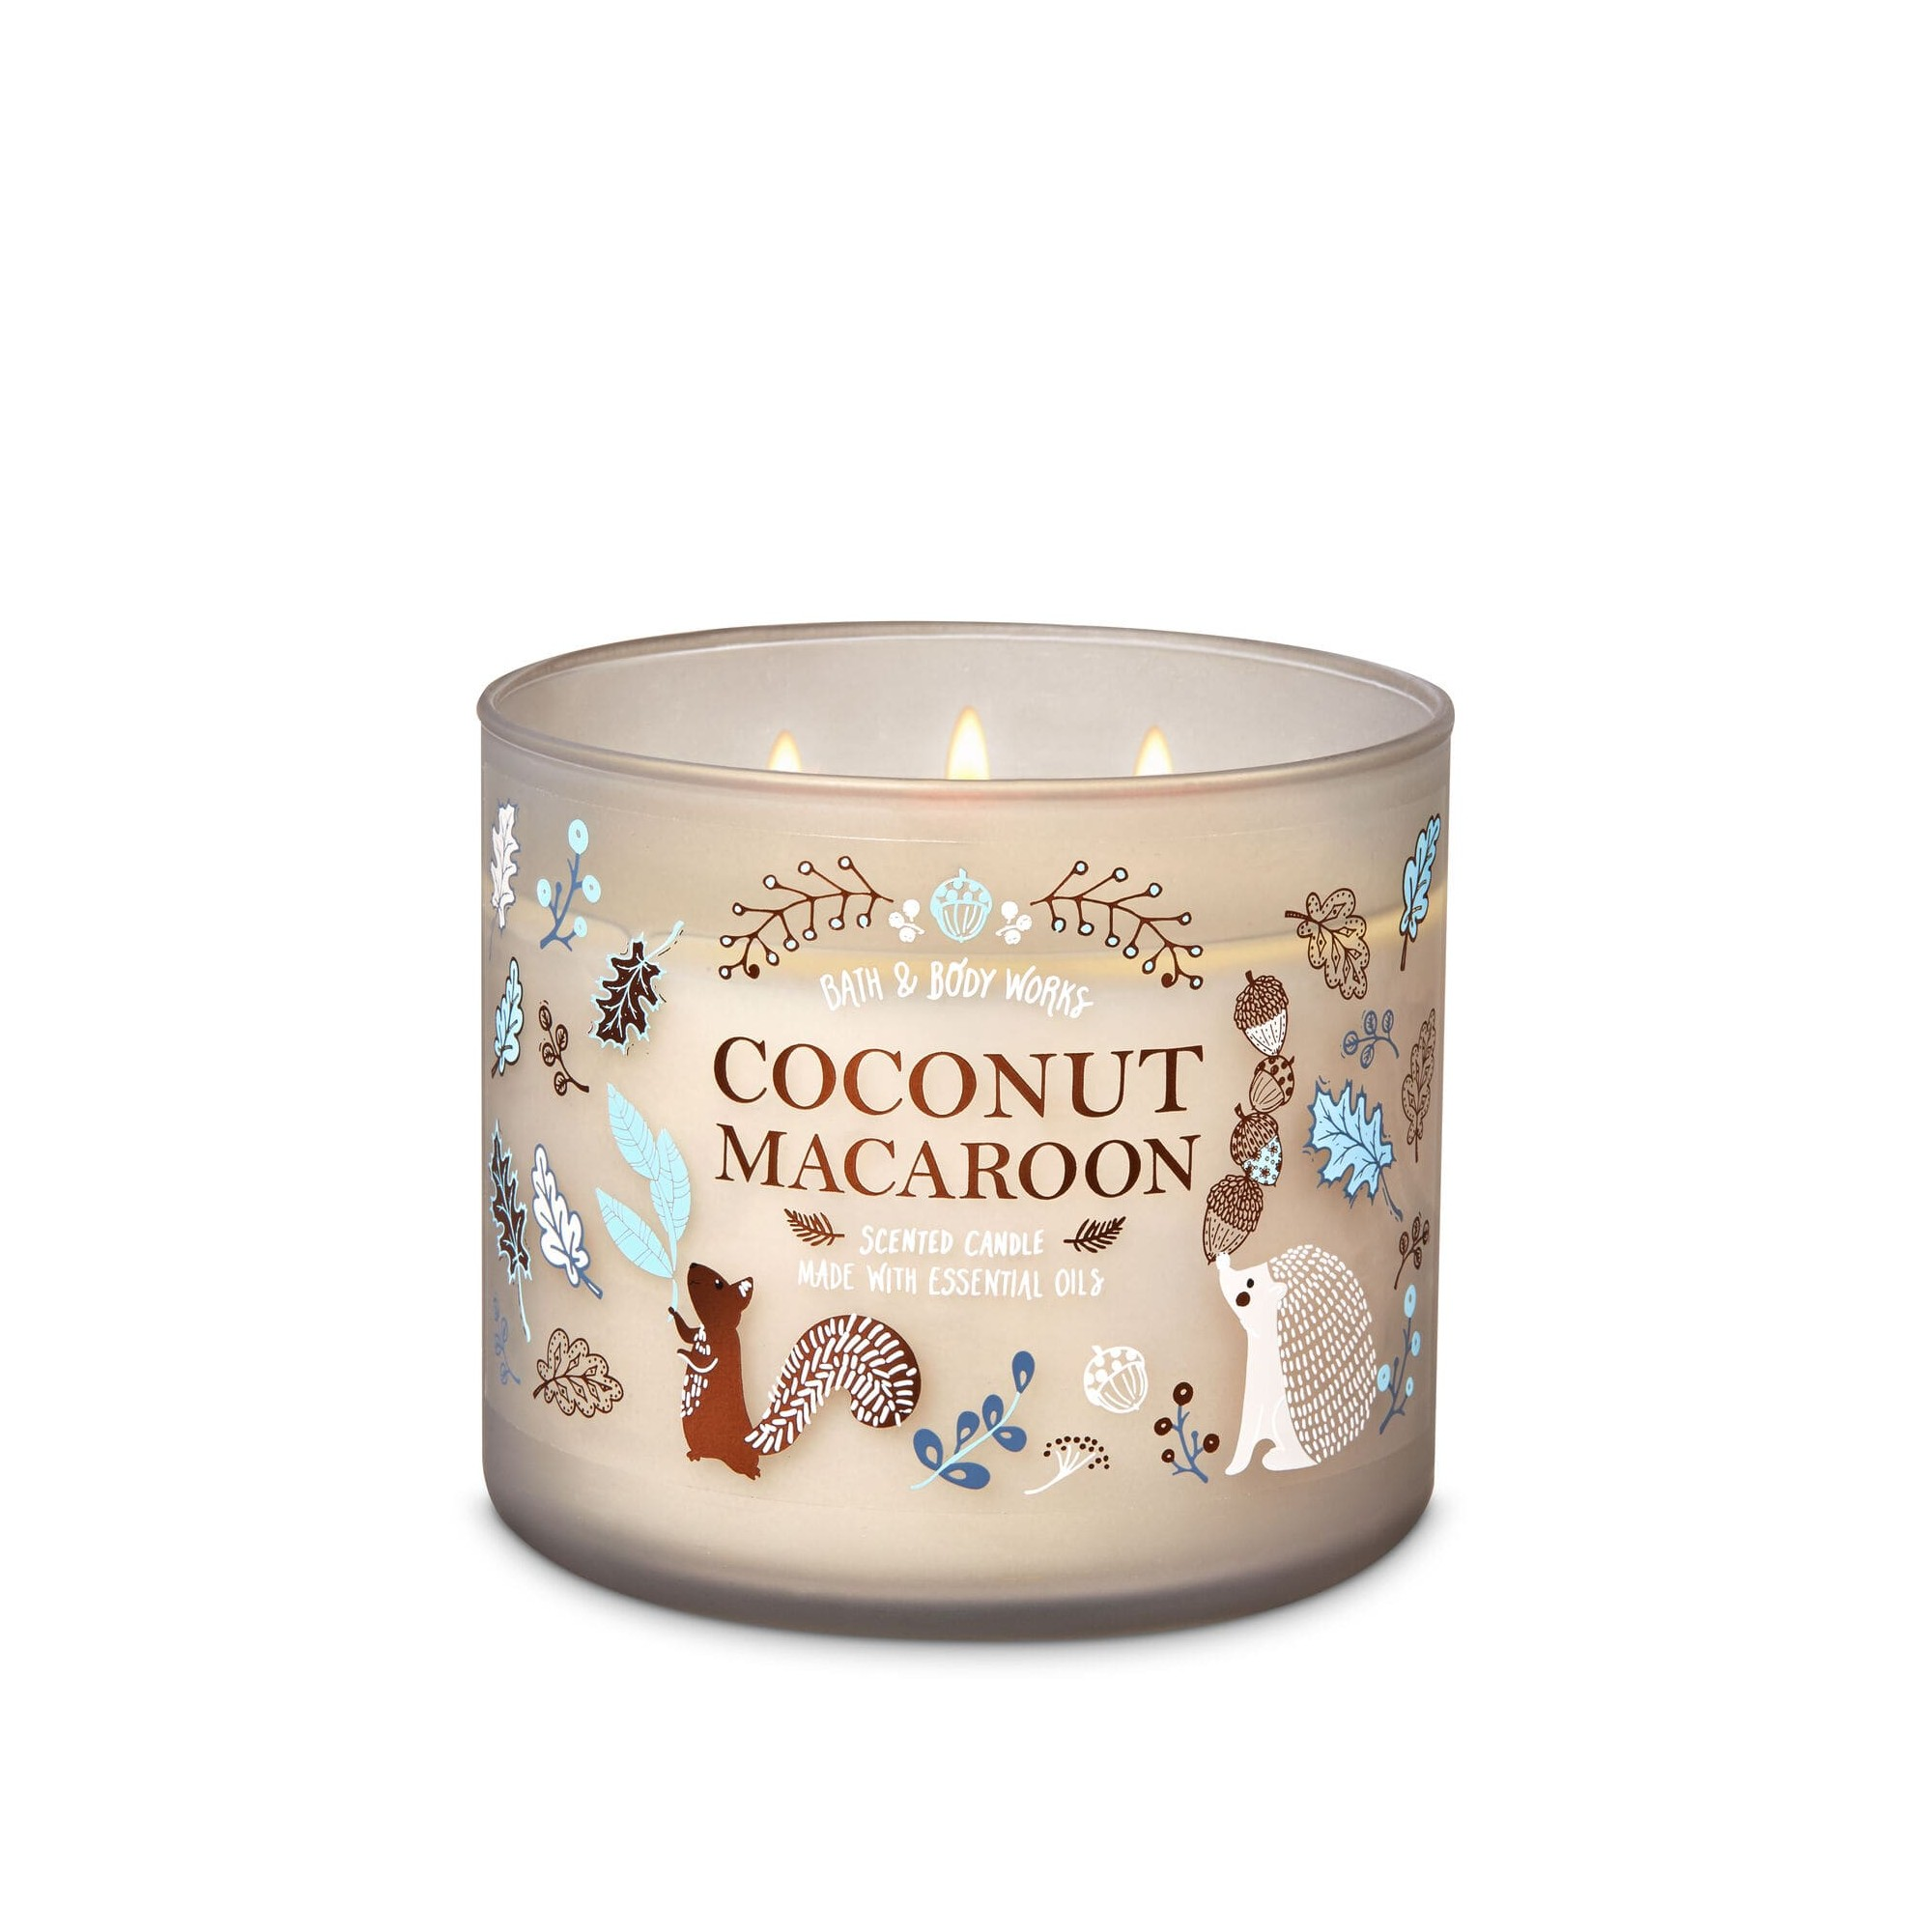 Bath & Body Works Spiced Coconut Macaroon 3 Wick Scented Candle